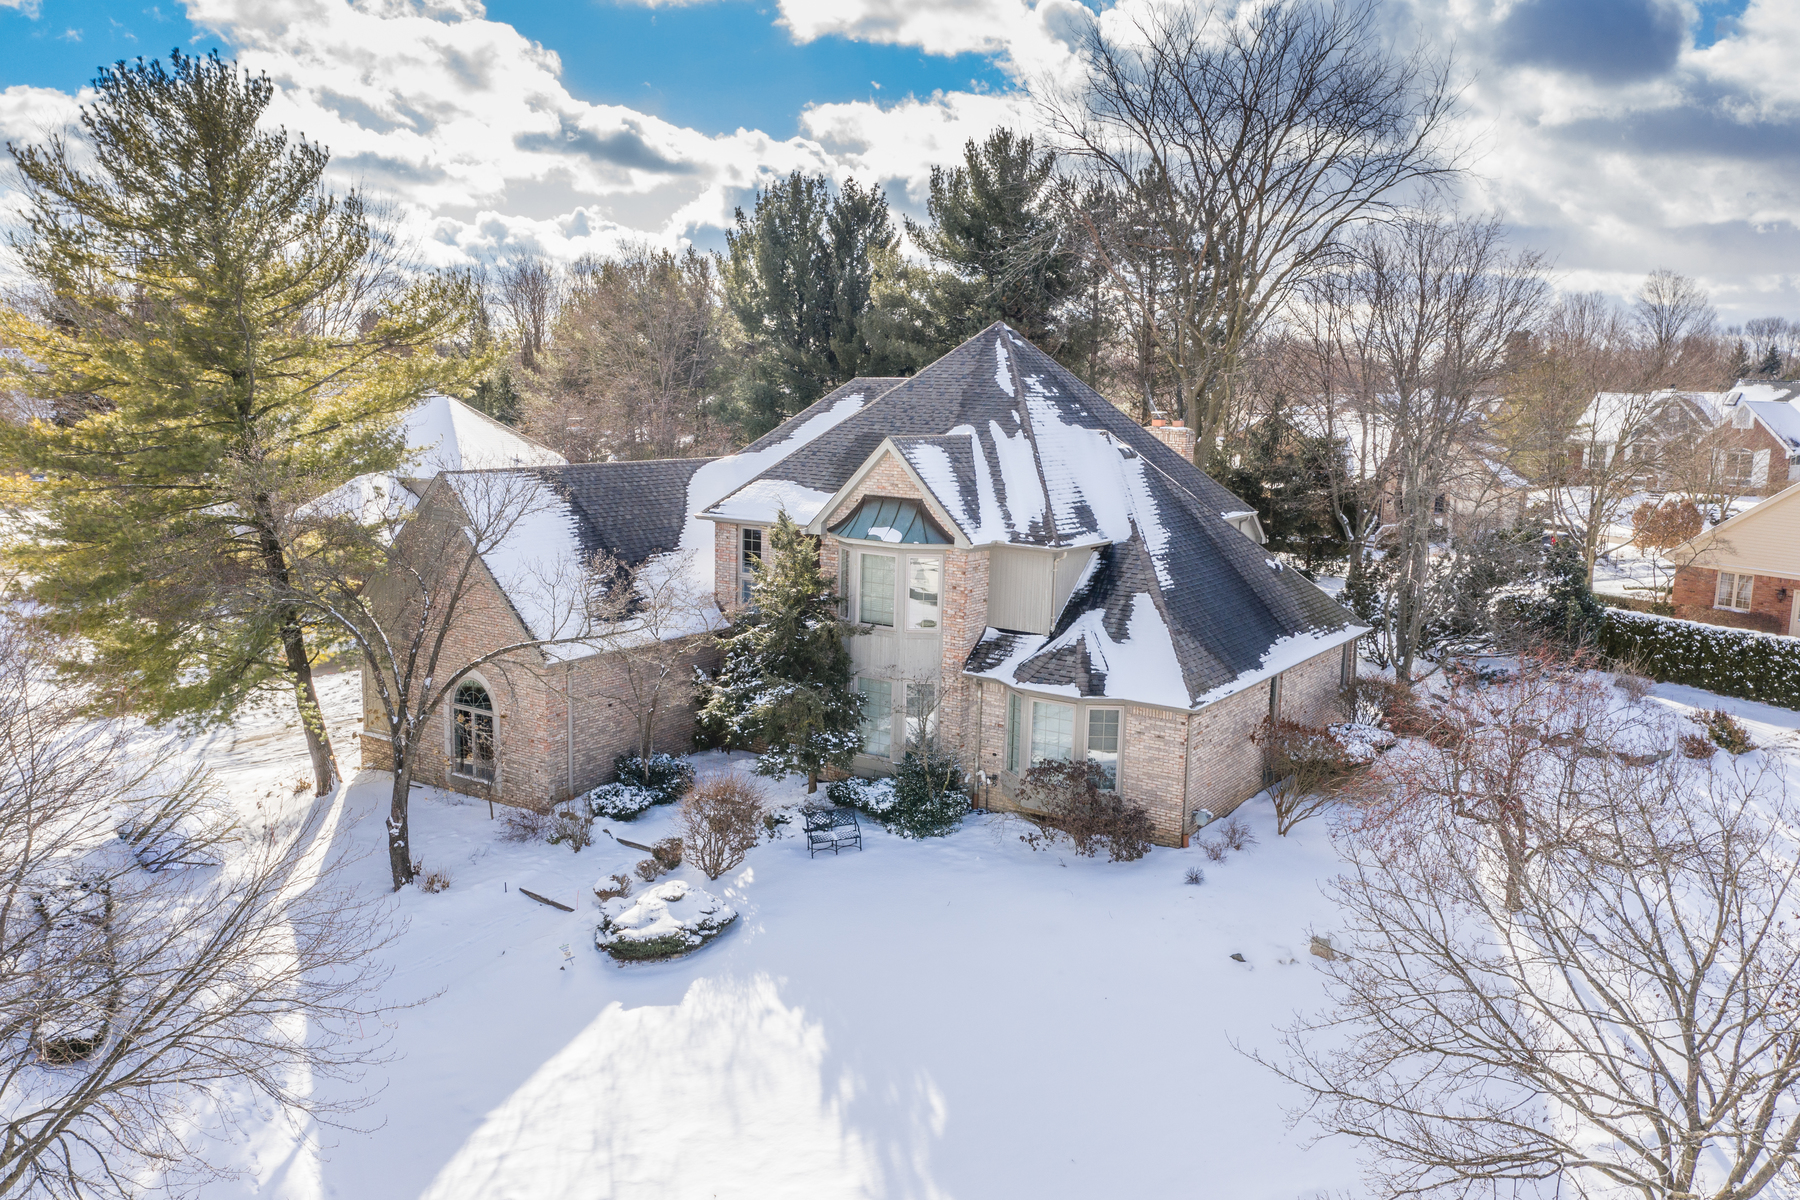 Single Family Homes for Sale at Northville 923 Andover Road Northville, Michigan 48167 United States